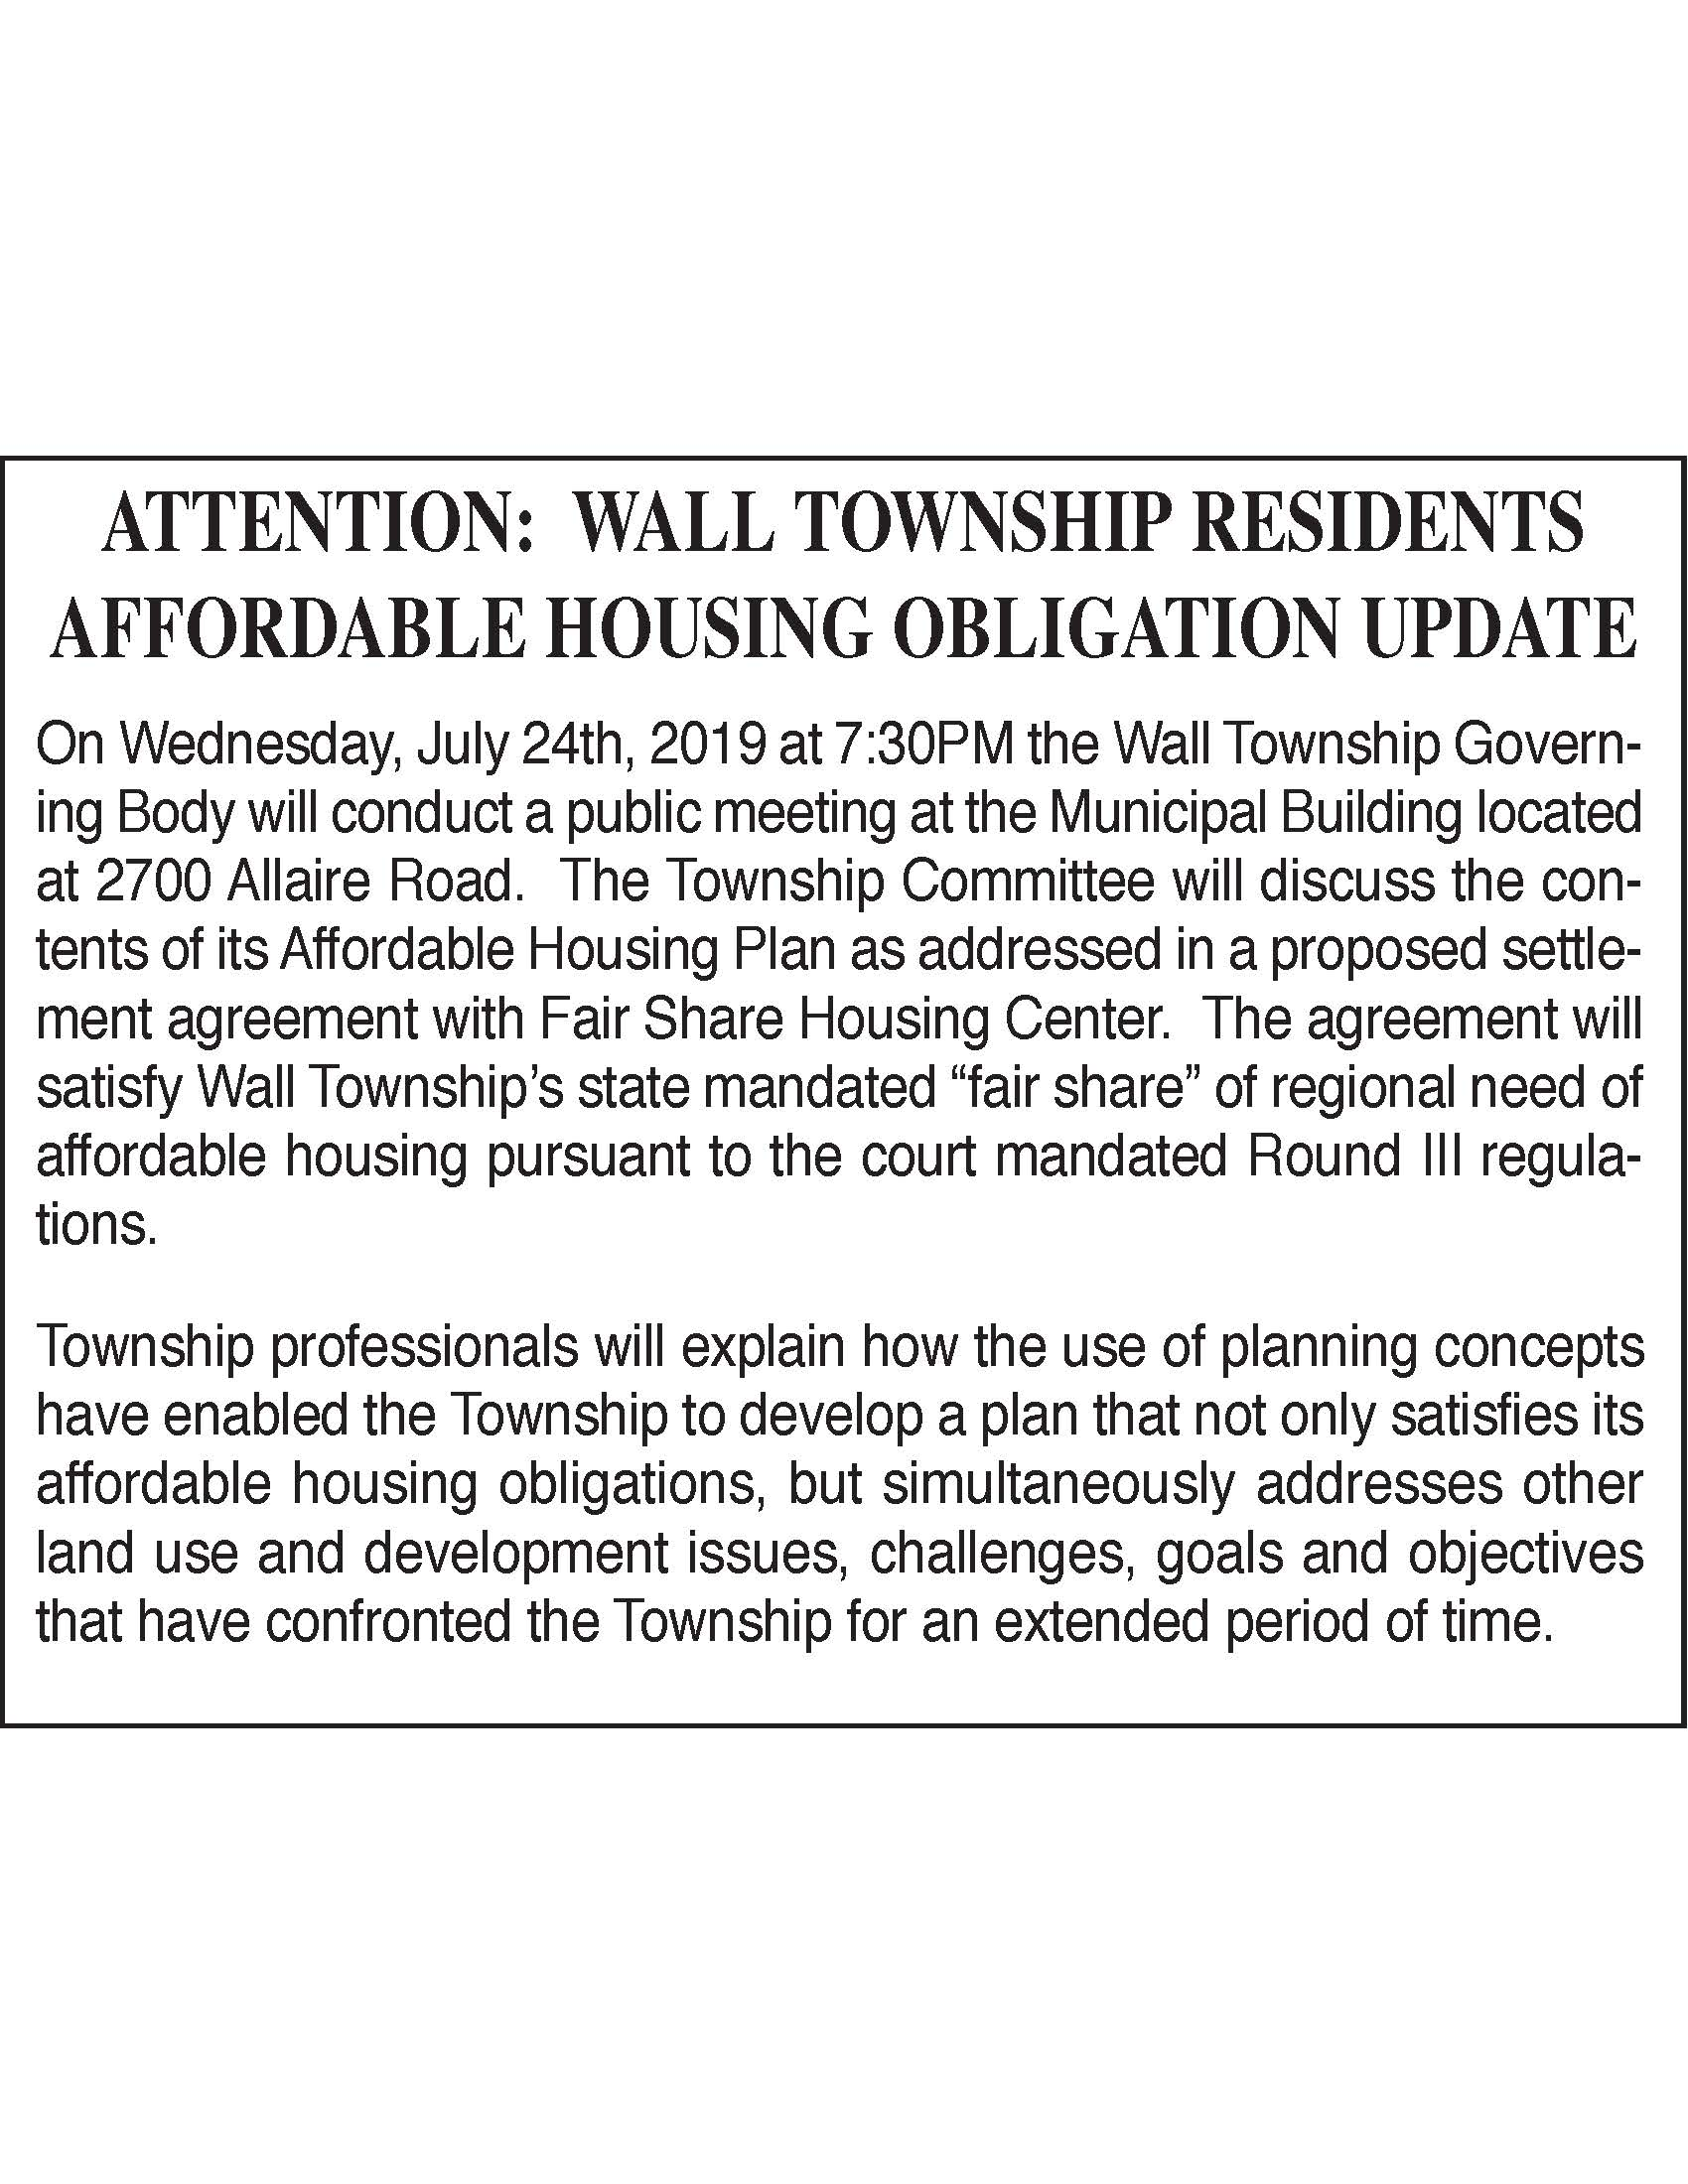 Affodable Housing Obligation Notice